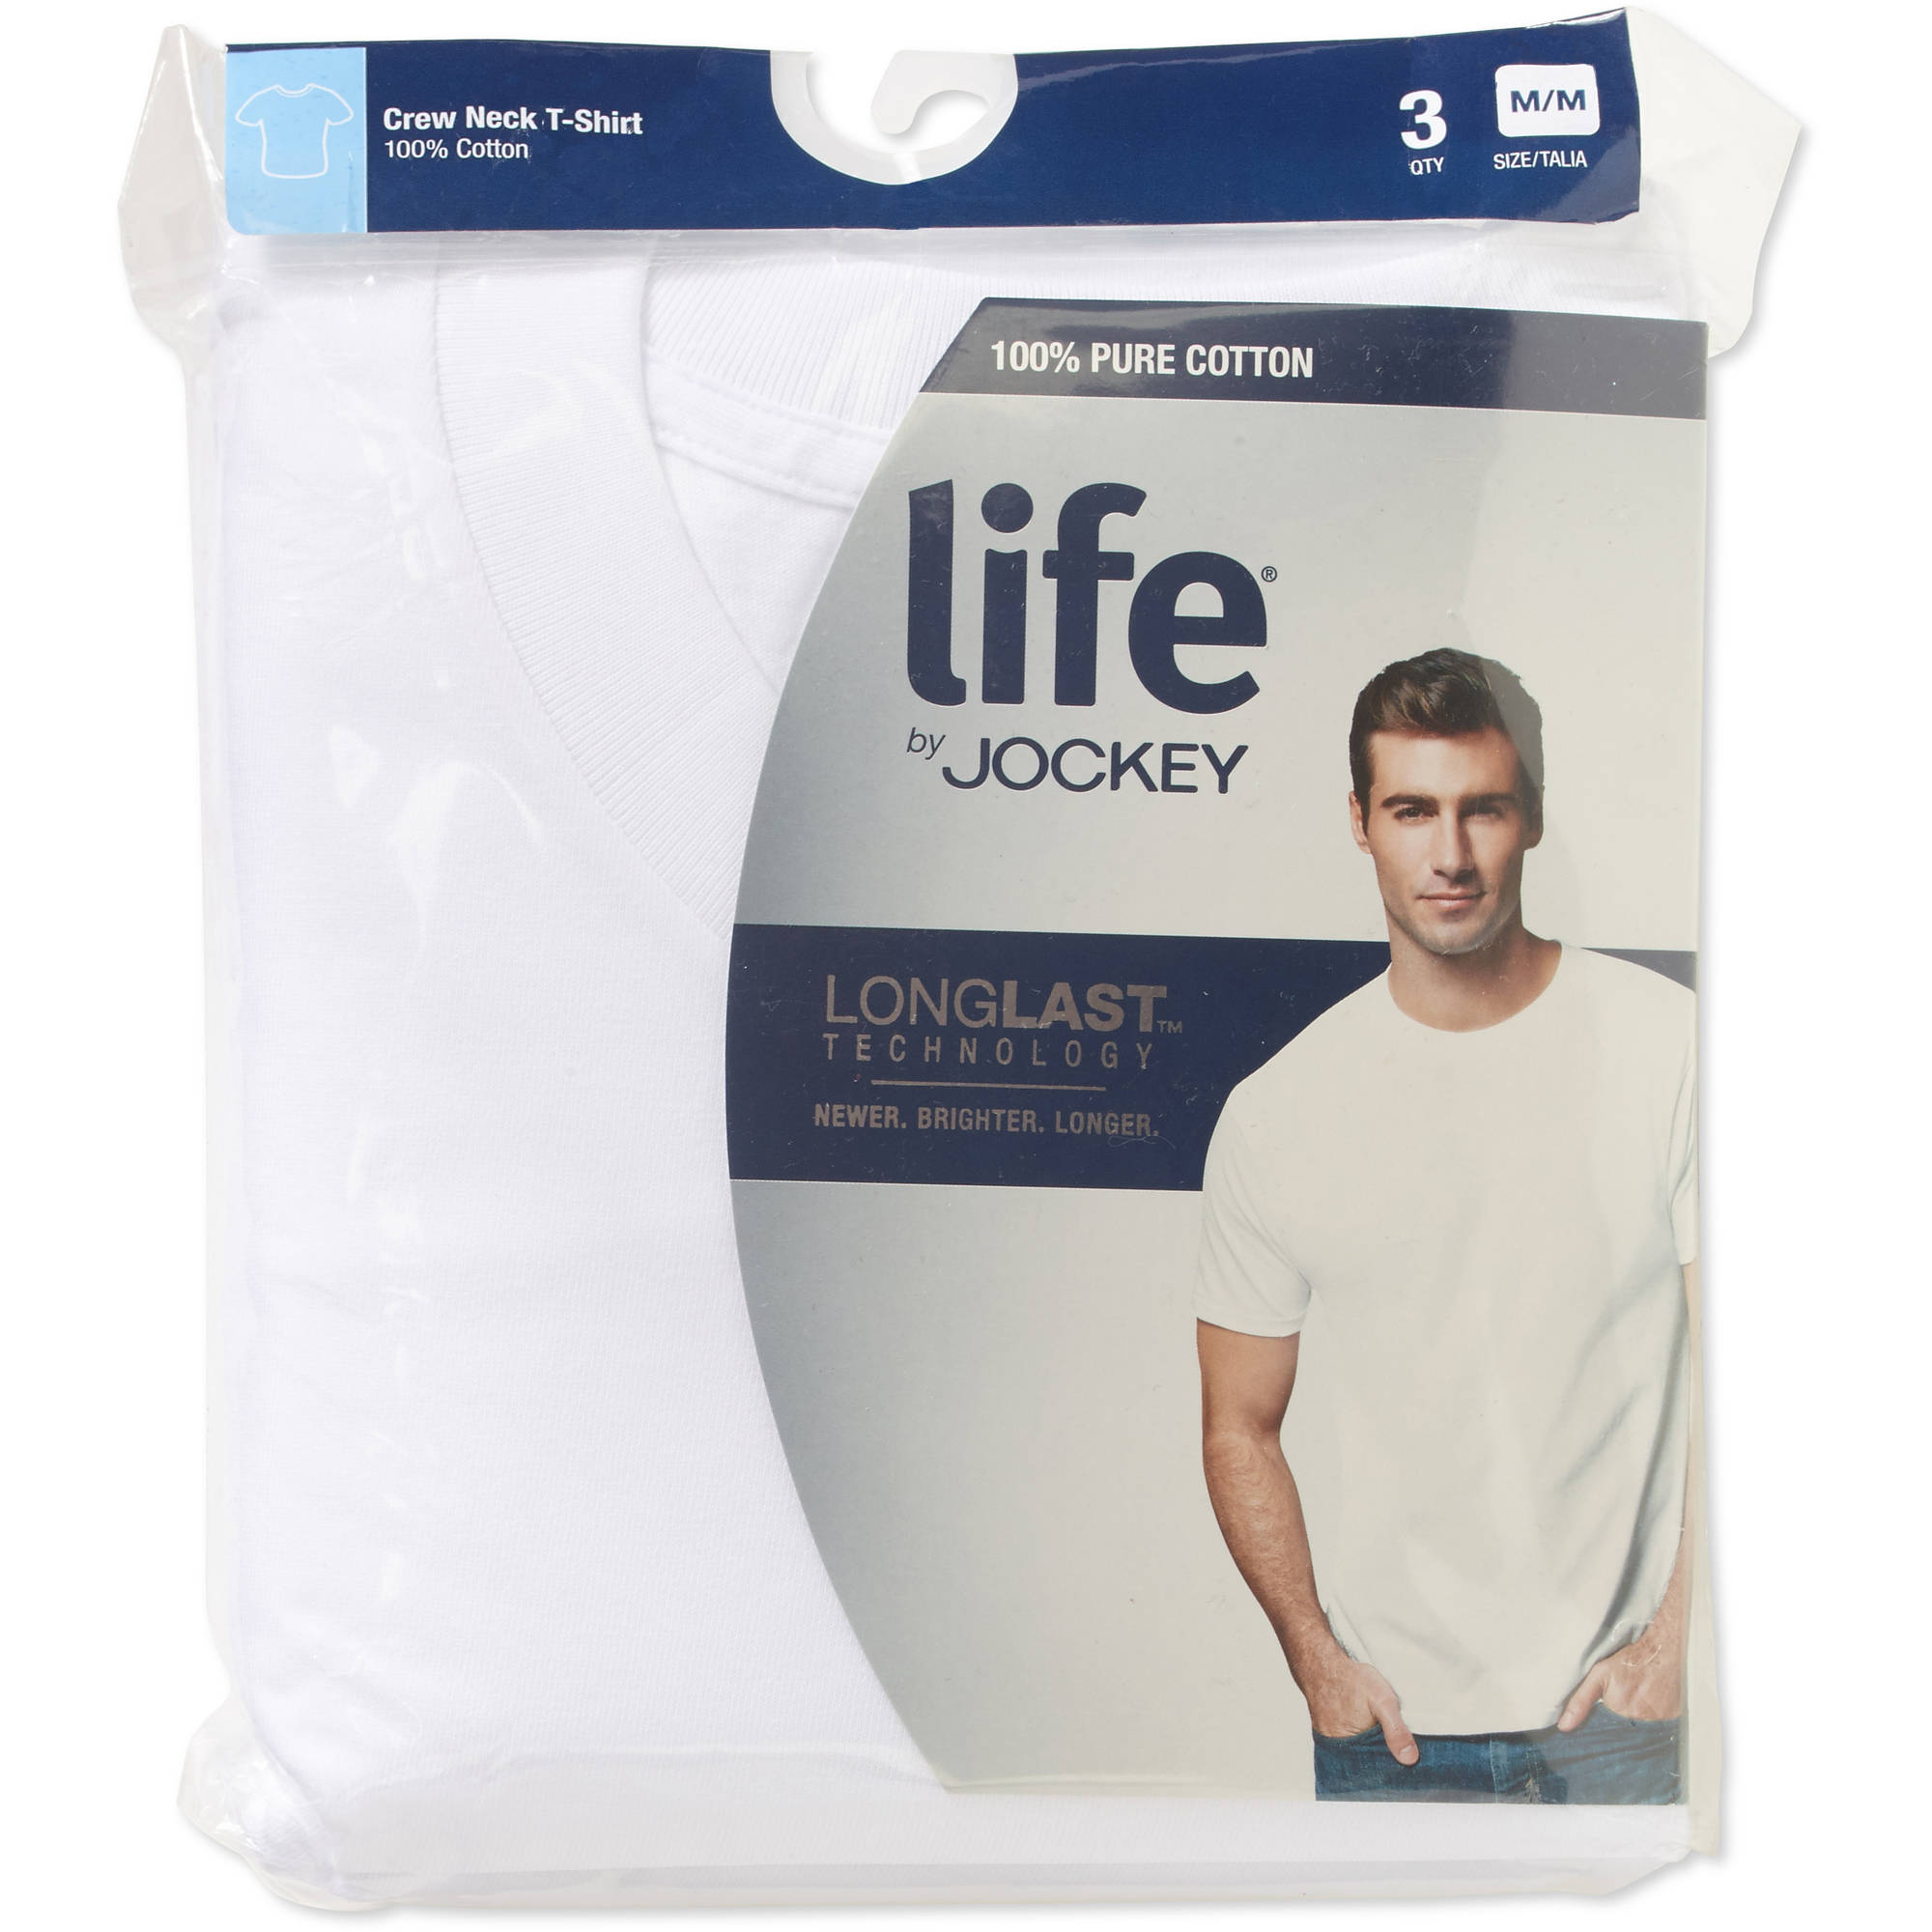 7f1055f5 Life by Jockey - Men's White Cotton T-Shirt, 3-Pack - Walmart.com